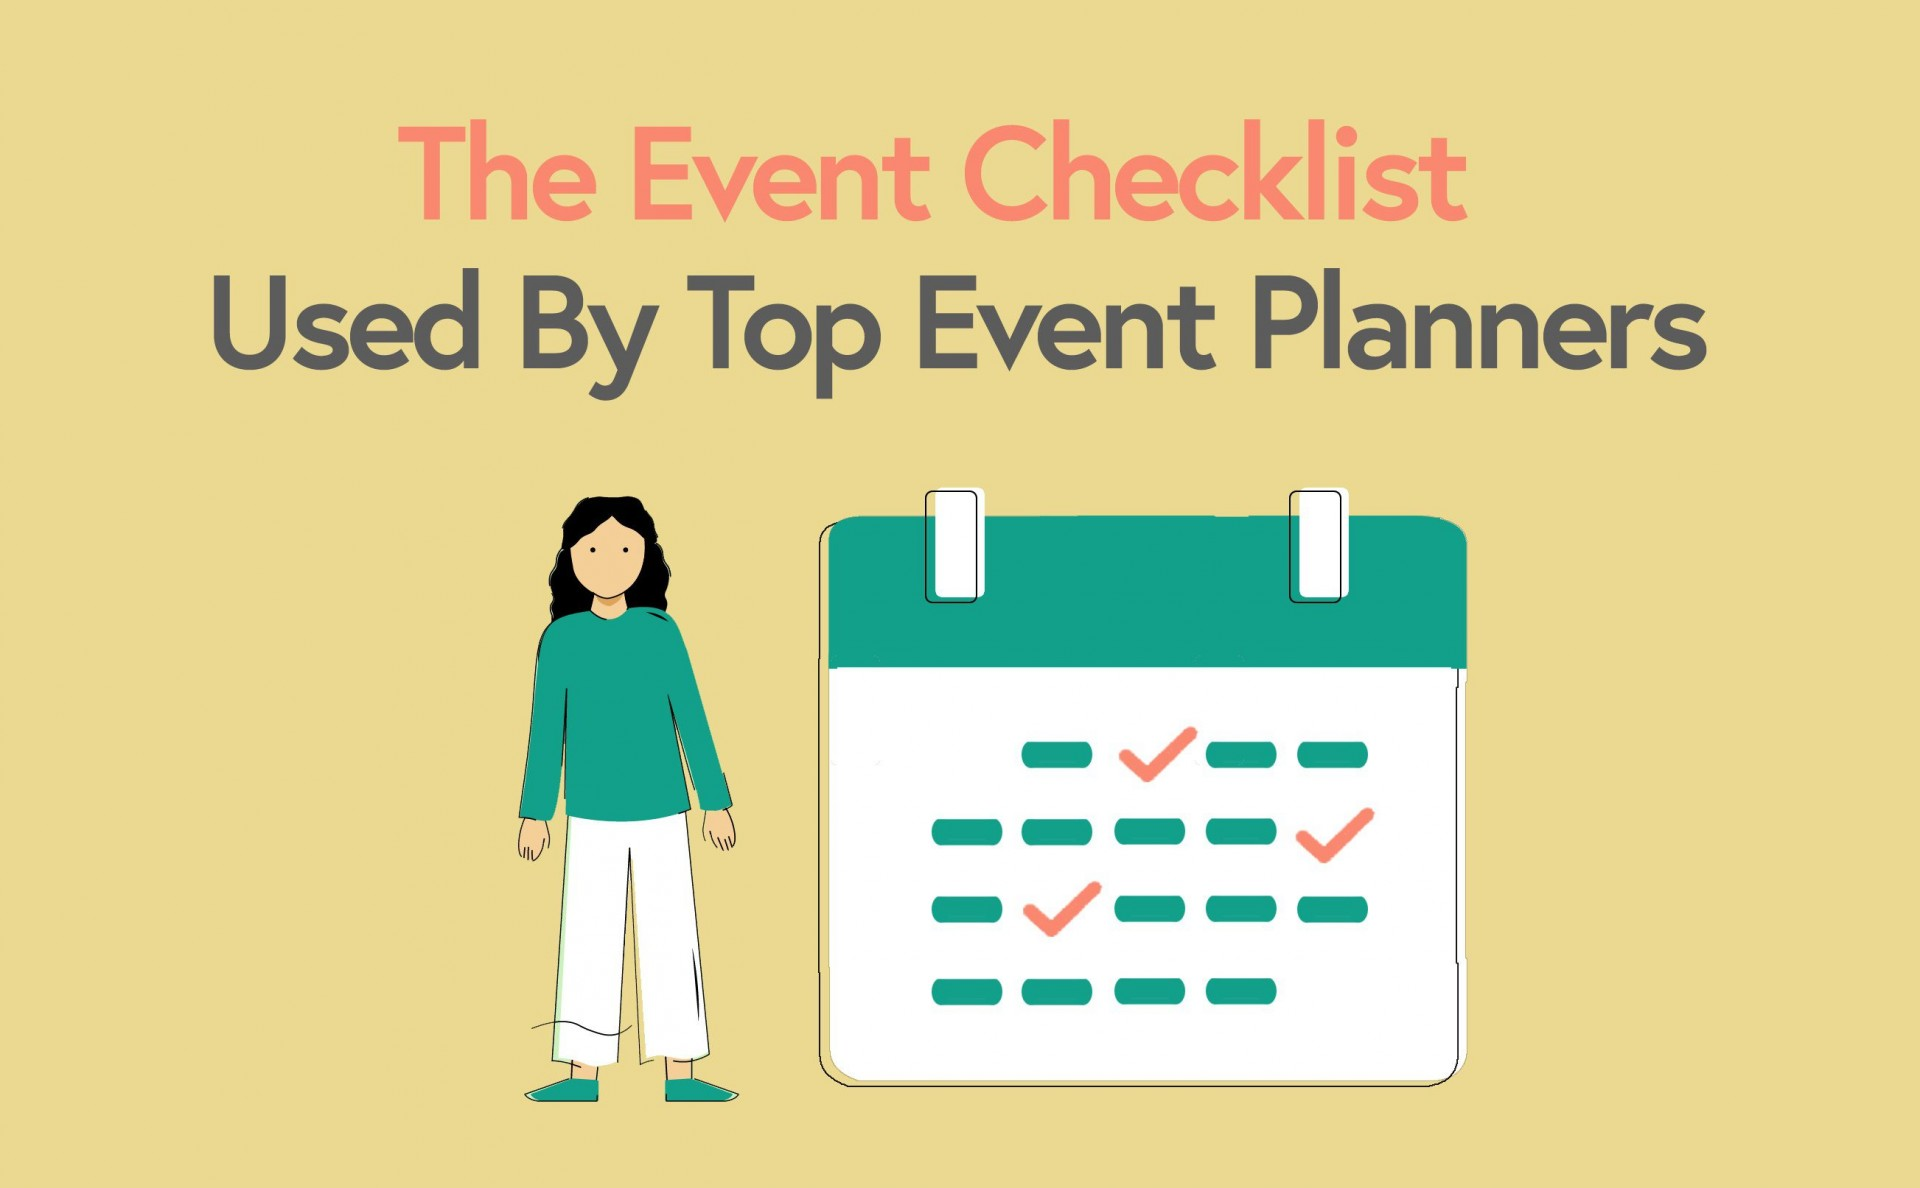 009 Unusual Free Event Planner Template Excel High Def  Checklist Planning For Corporate1920